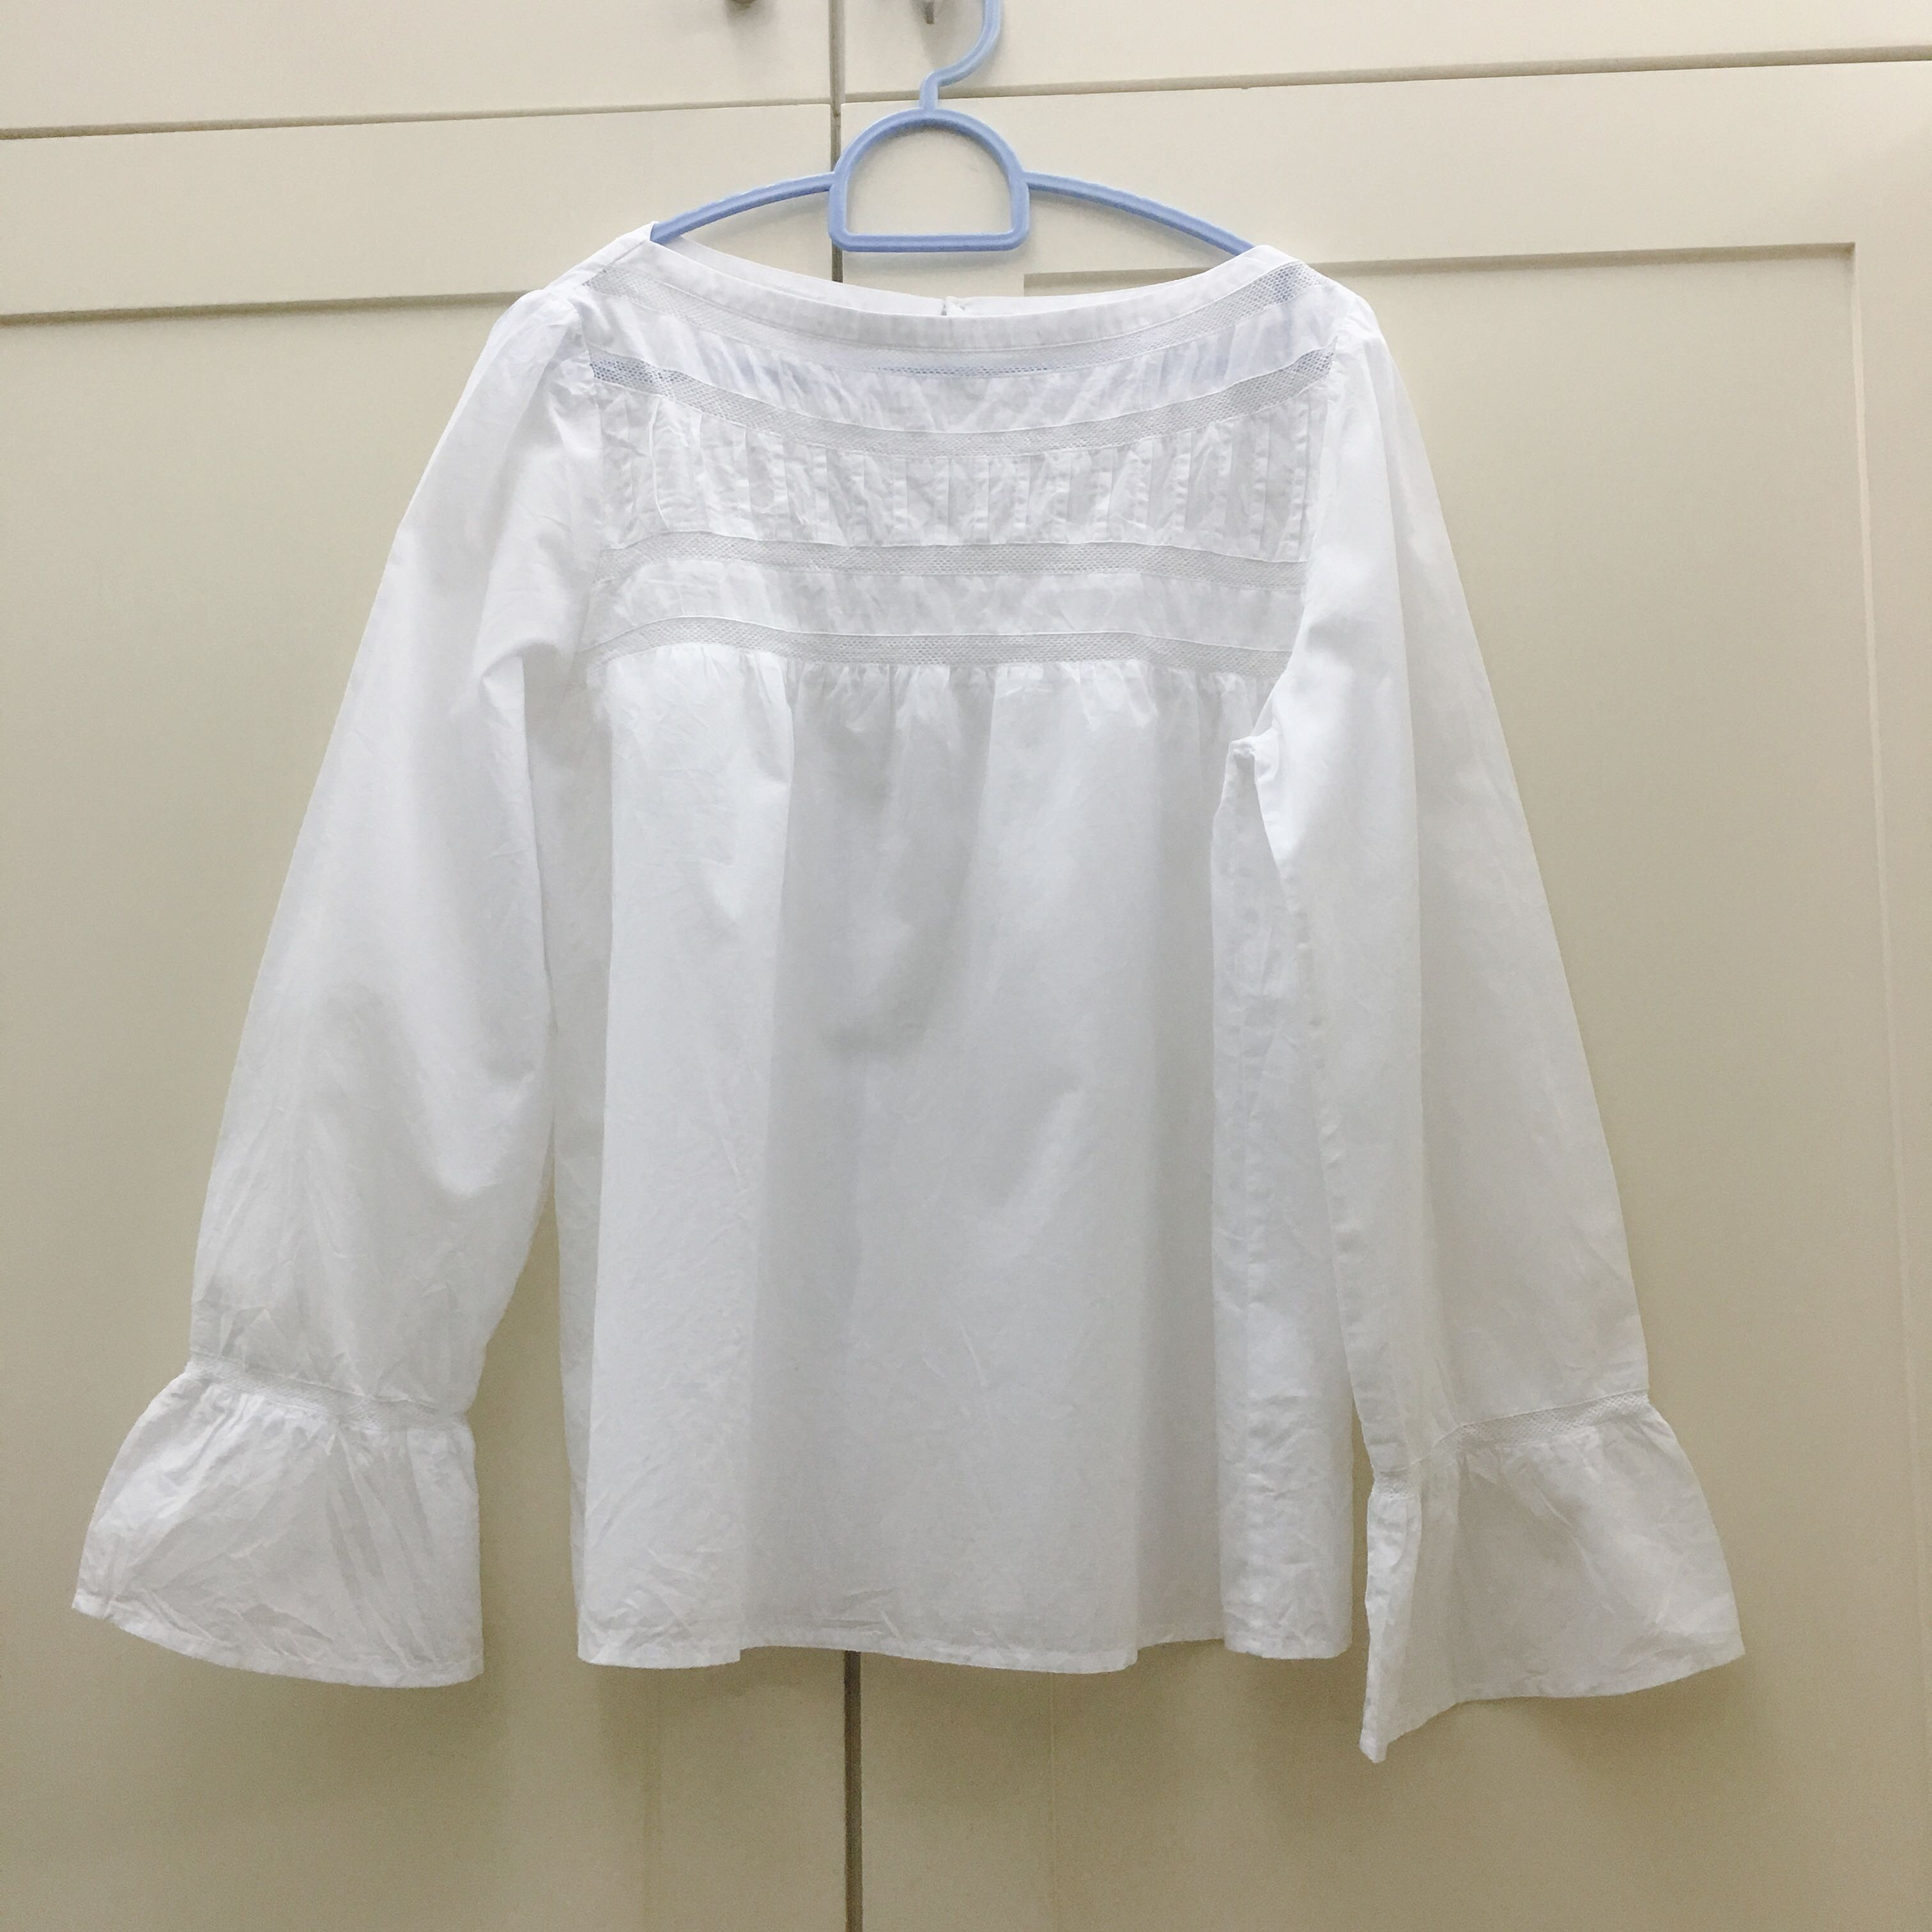 7b788fb8050d83 Lacey white top, Women's Fashion, Clothes, Tops on Carousell